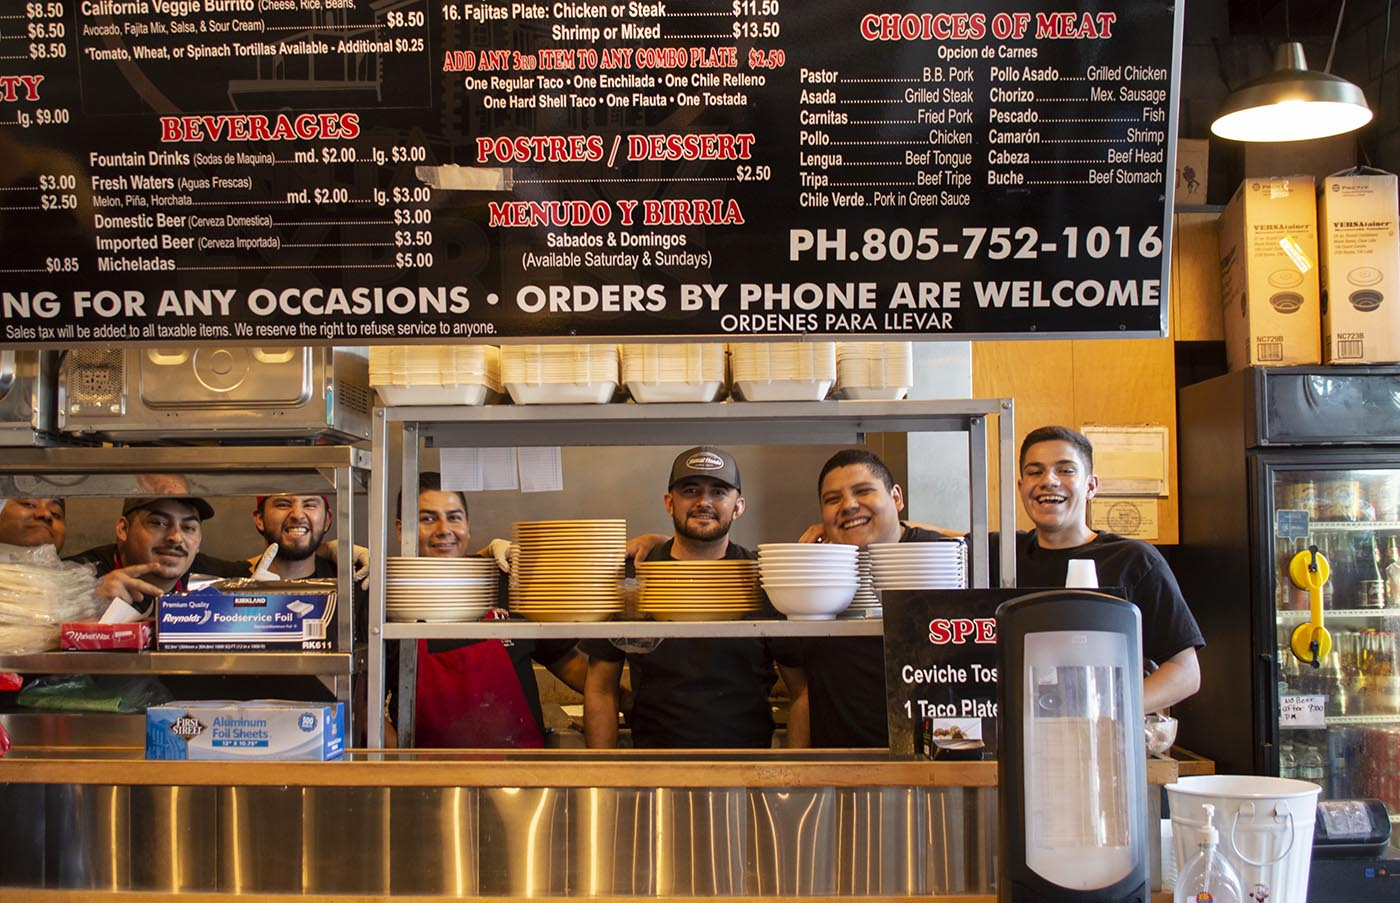 Taqueria Santa Cruz Express Set To Open New Location On Foothill